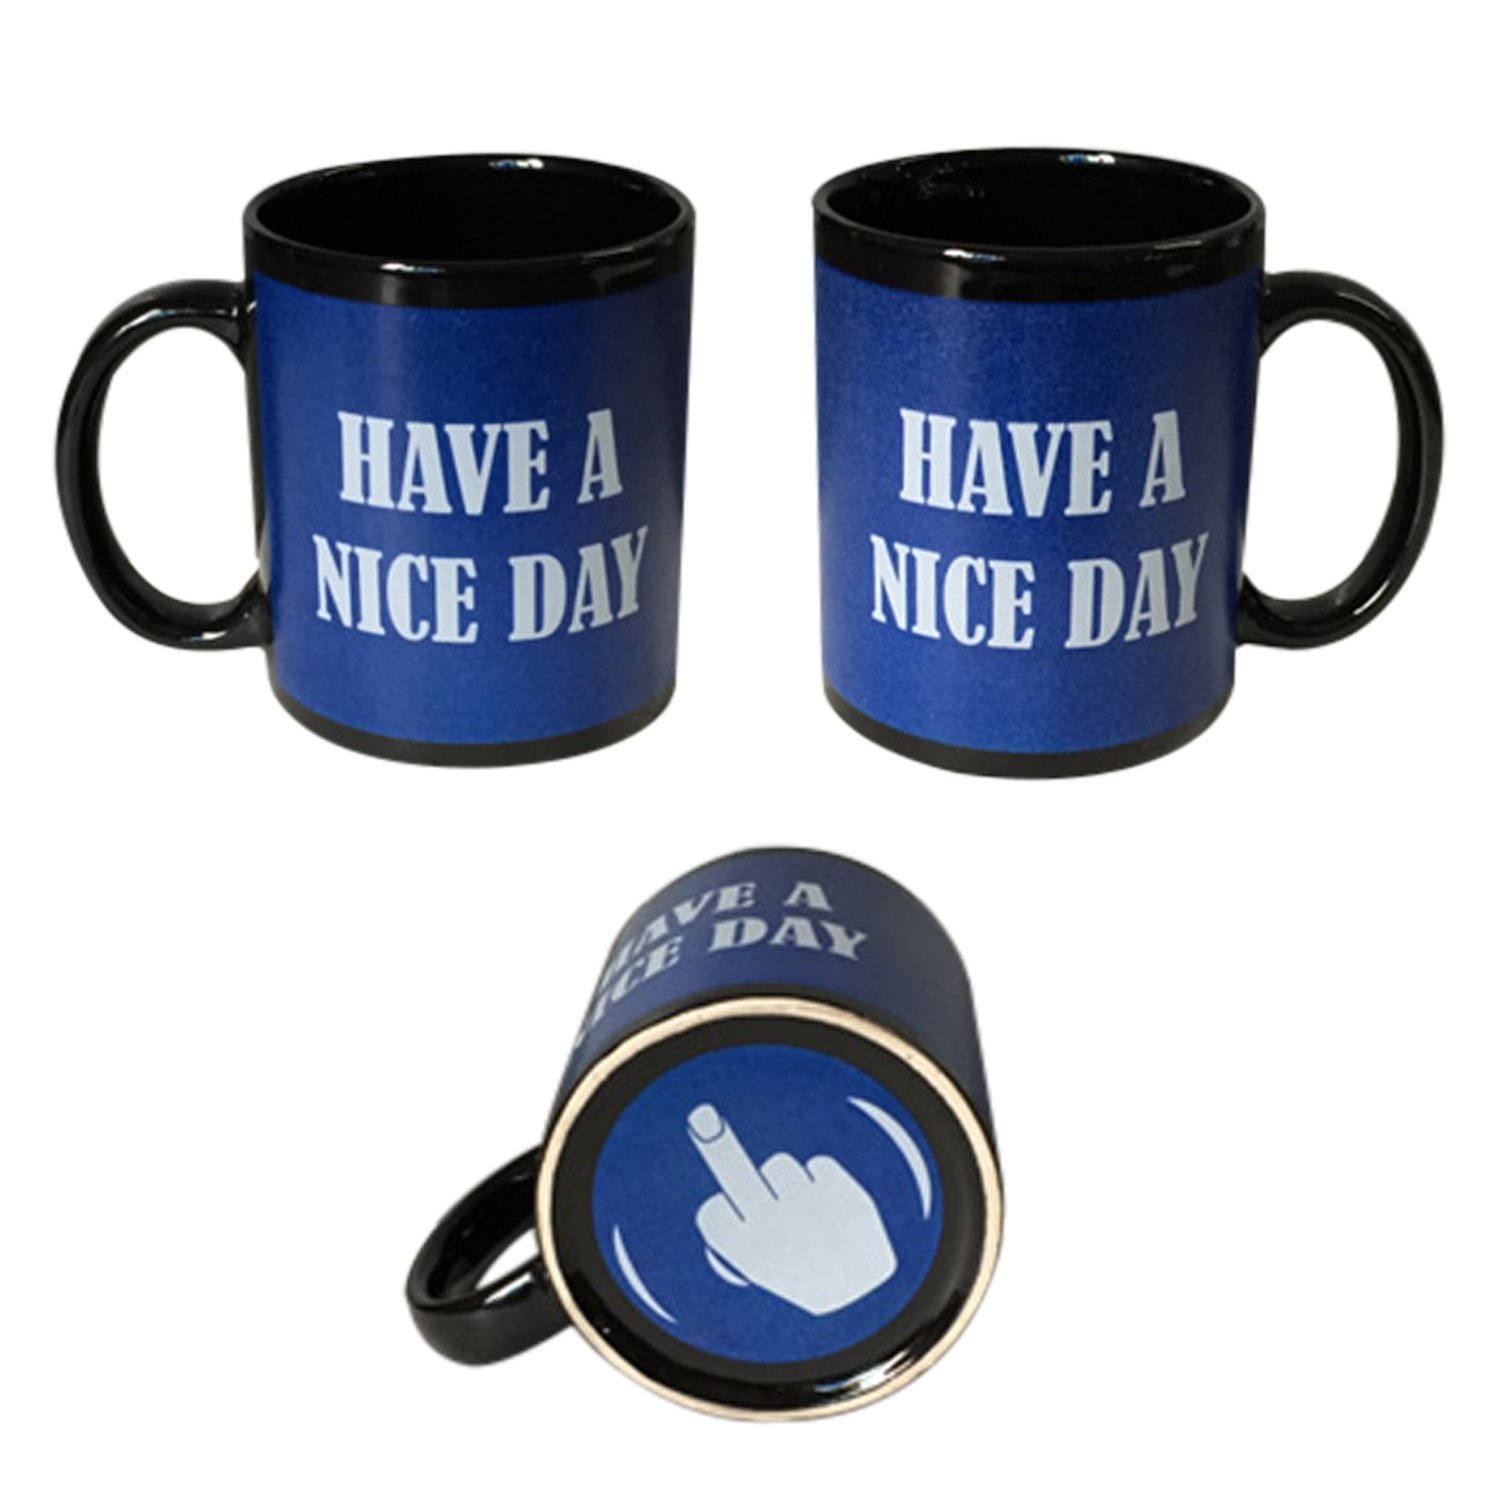 Variation 600209963955 Of Cortunex Do Epic Shit Mug Funny Gift Black Mug 11oz B01IPXR5S8 750